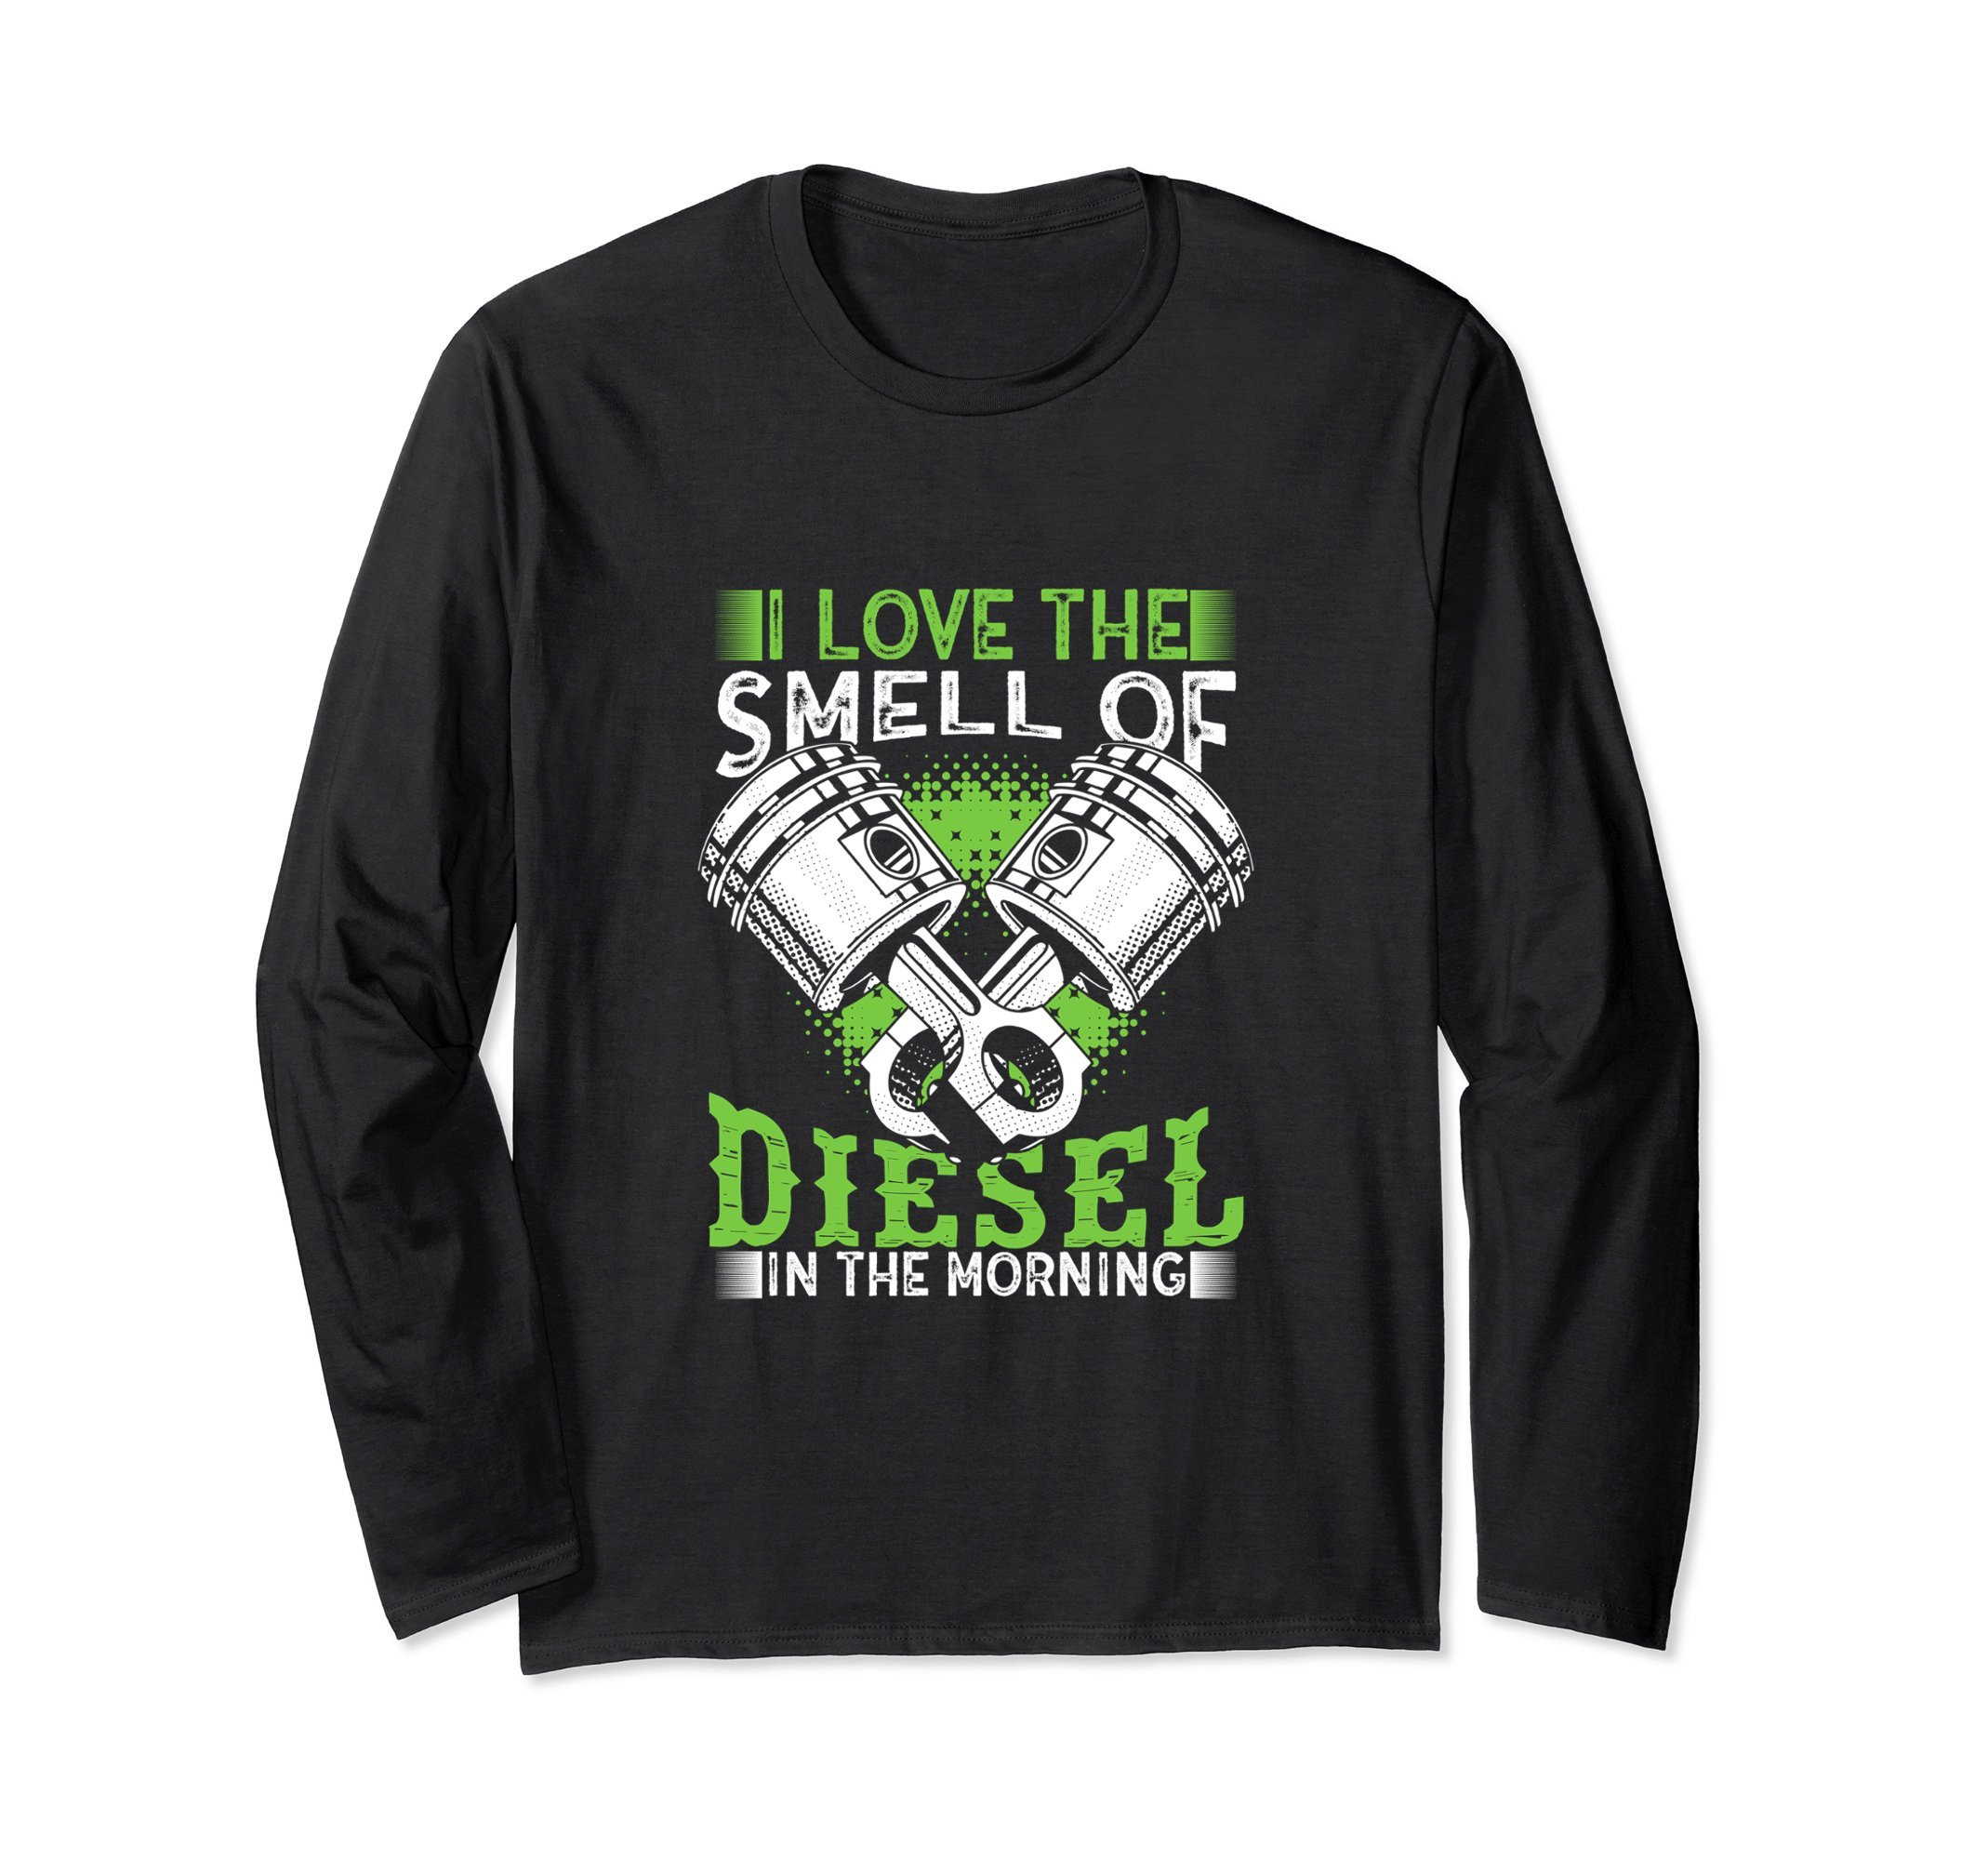 Unisex I Love the Smell of Diesel in the Morning Truck Driver Shirt XL: Black